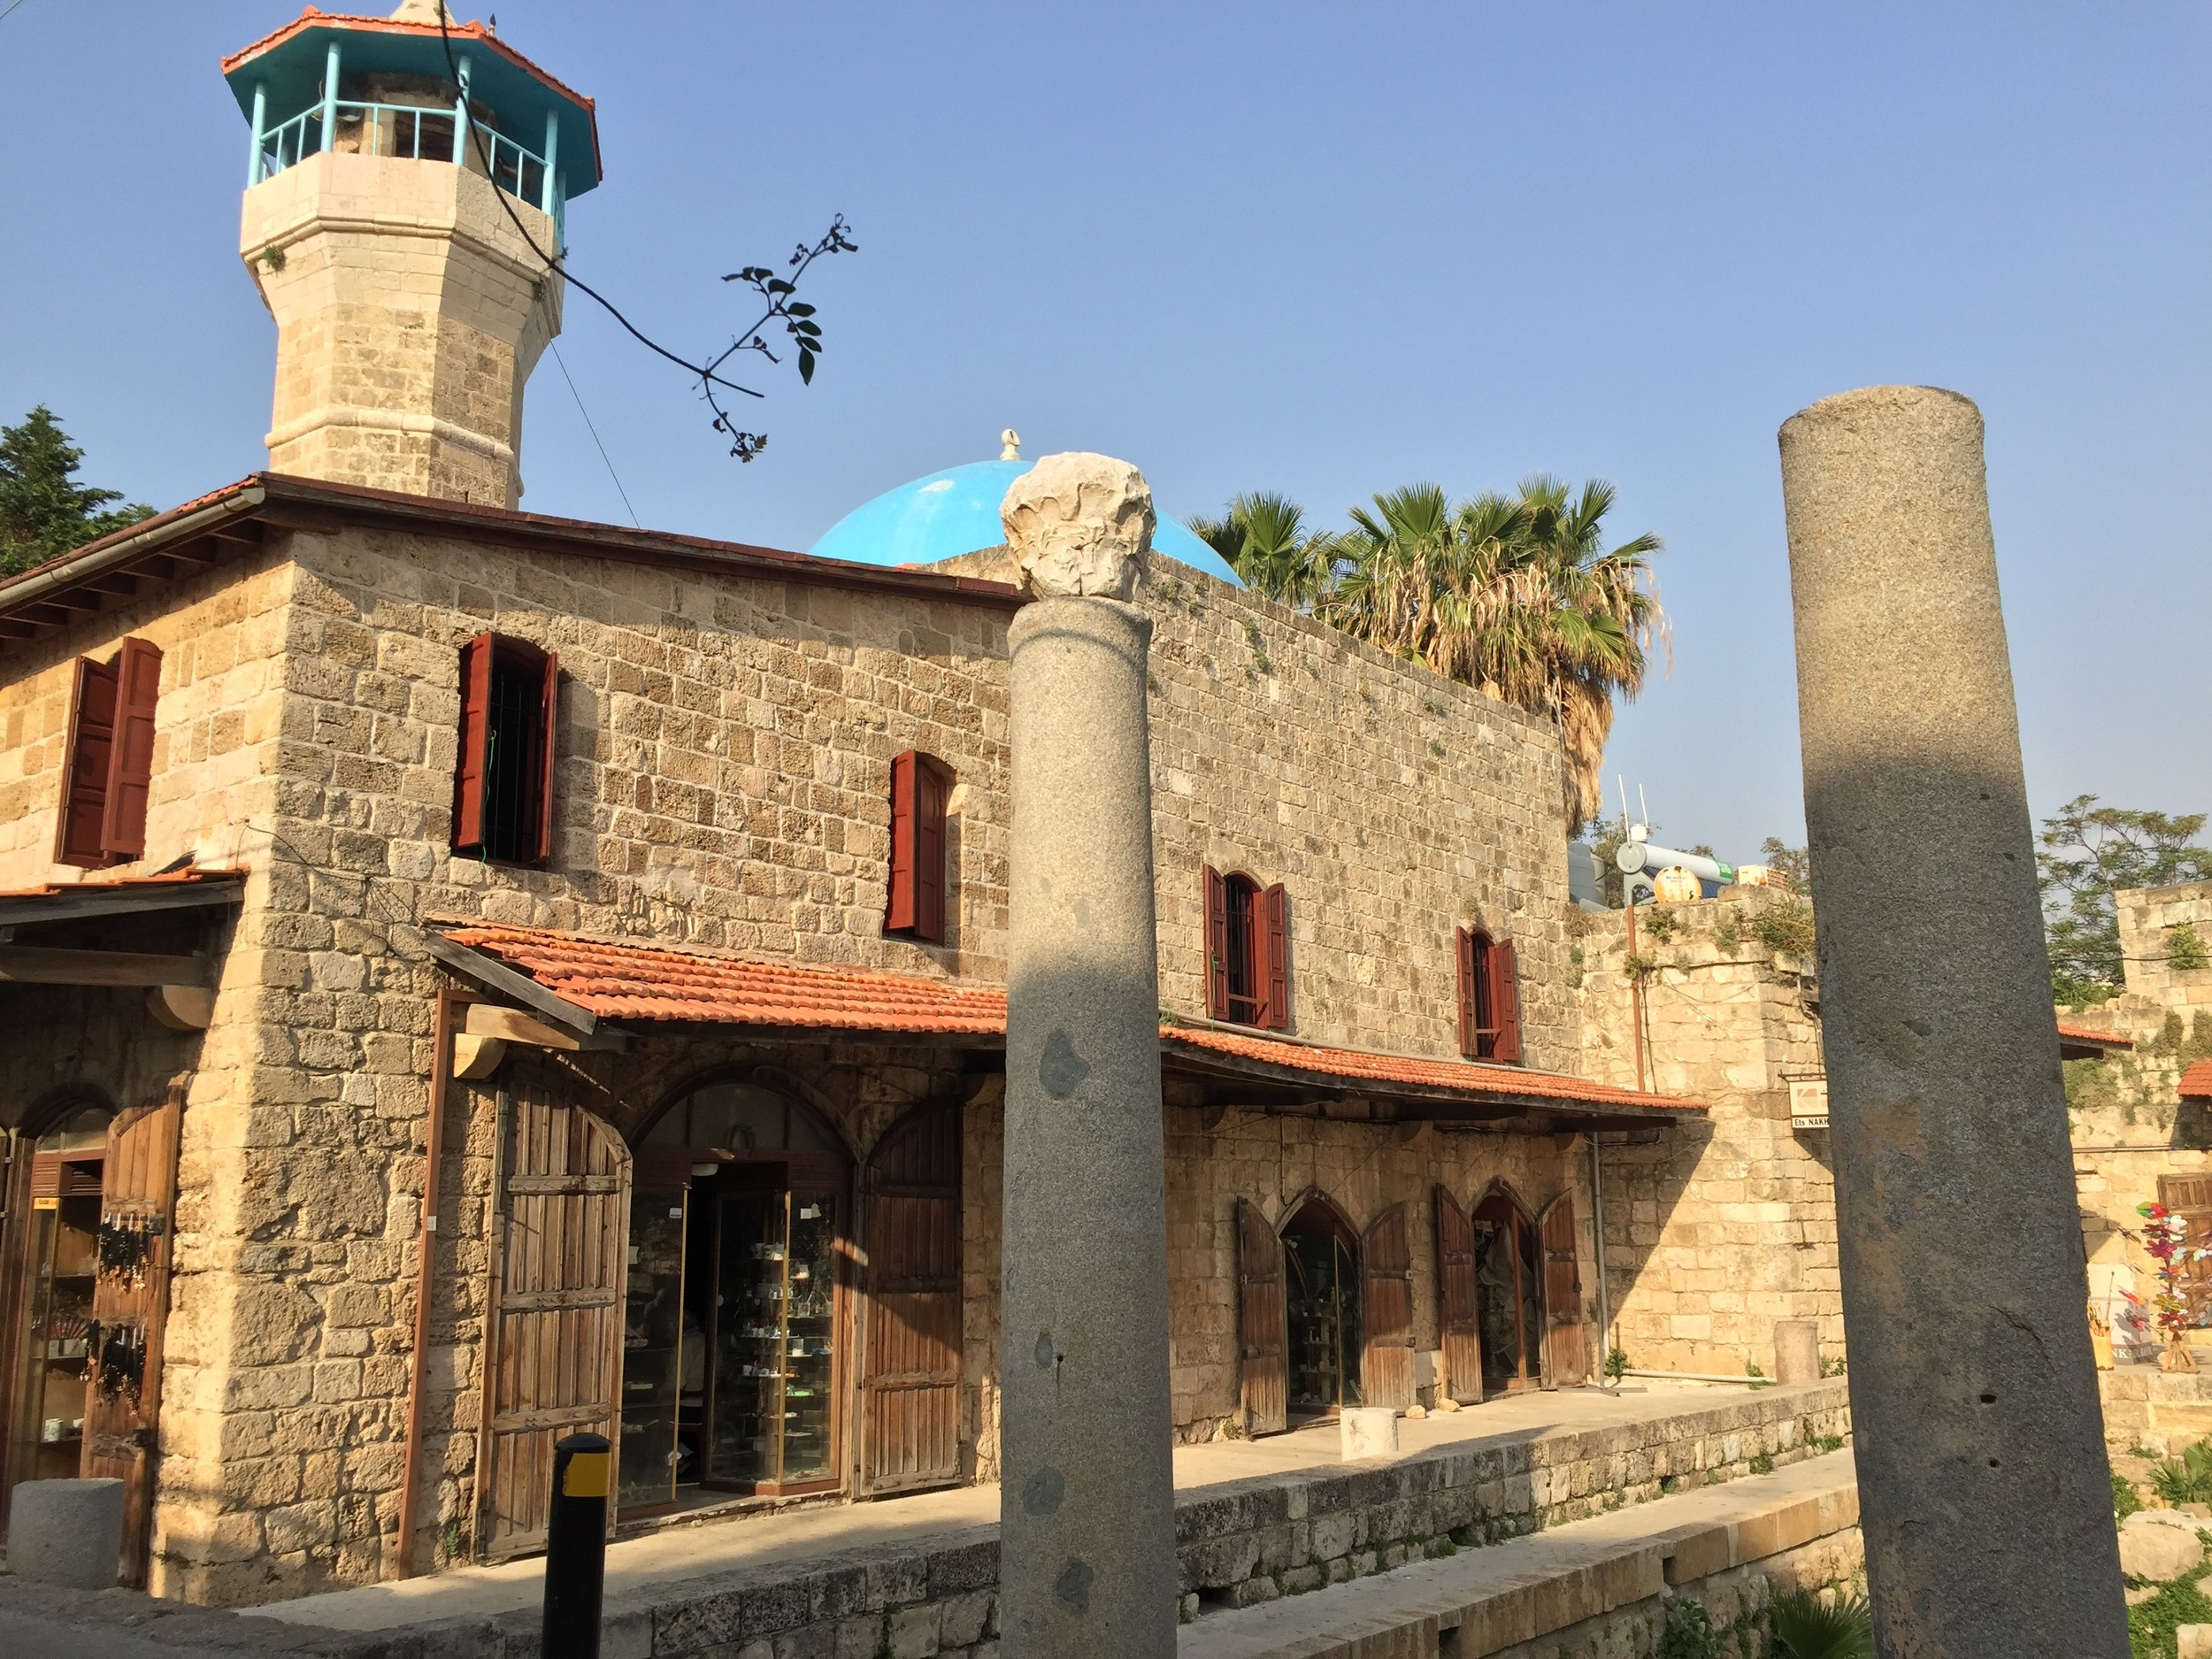 A tiny mosque stands next to ancient Roman pillars in Byblos